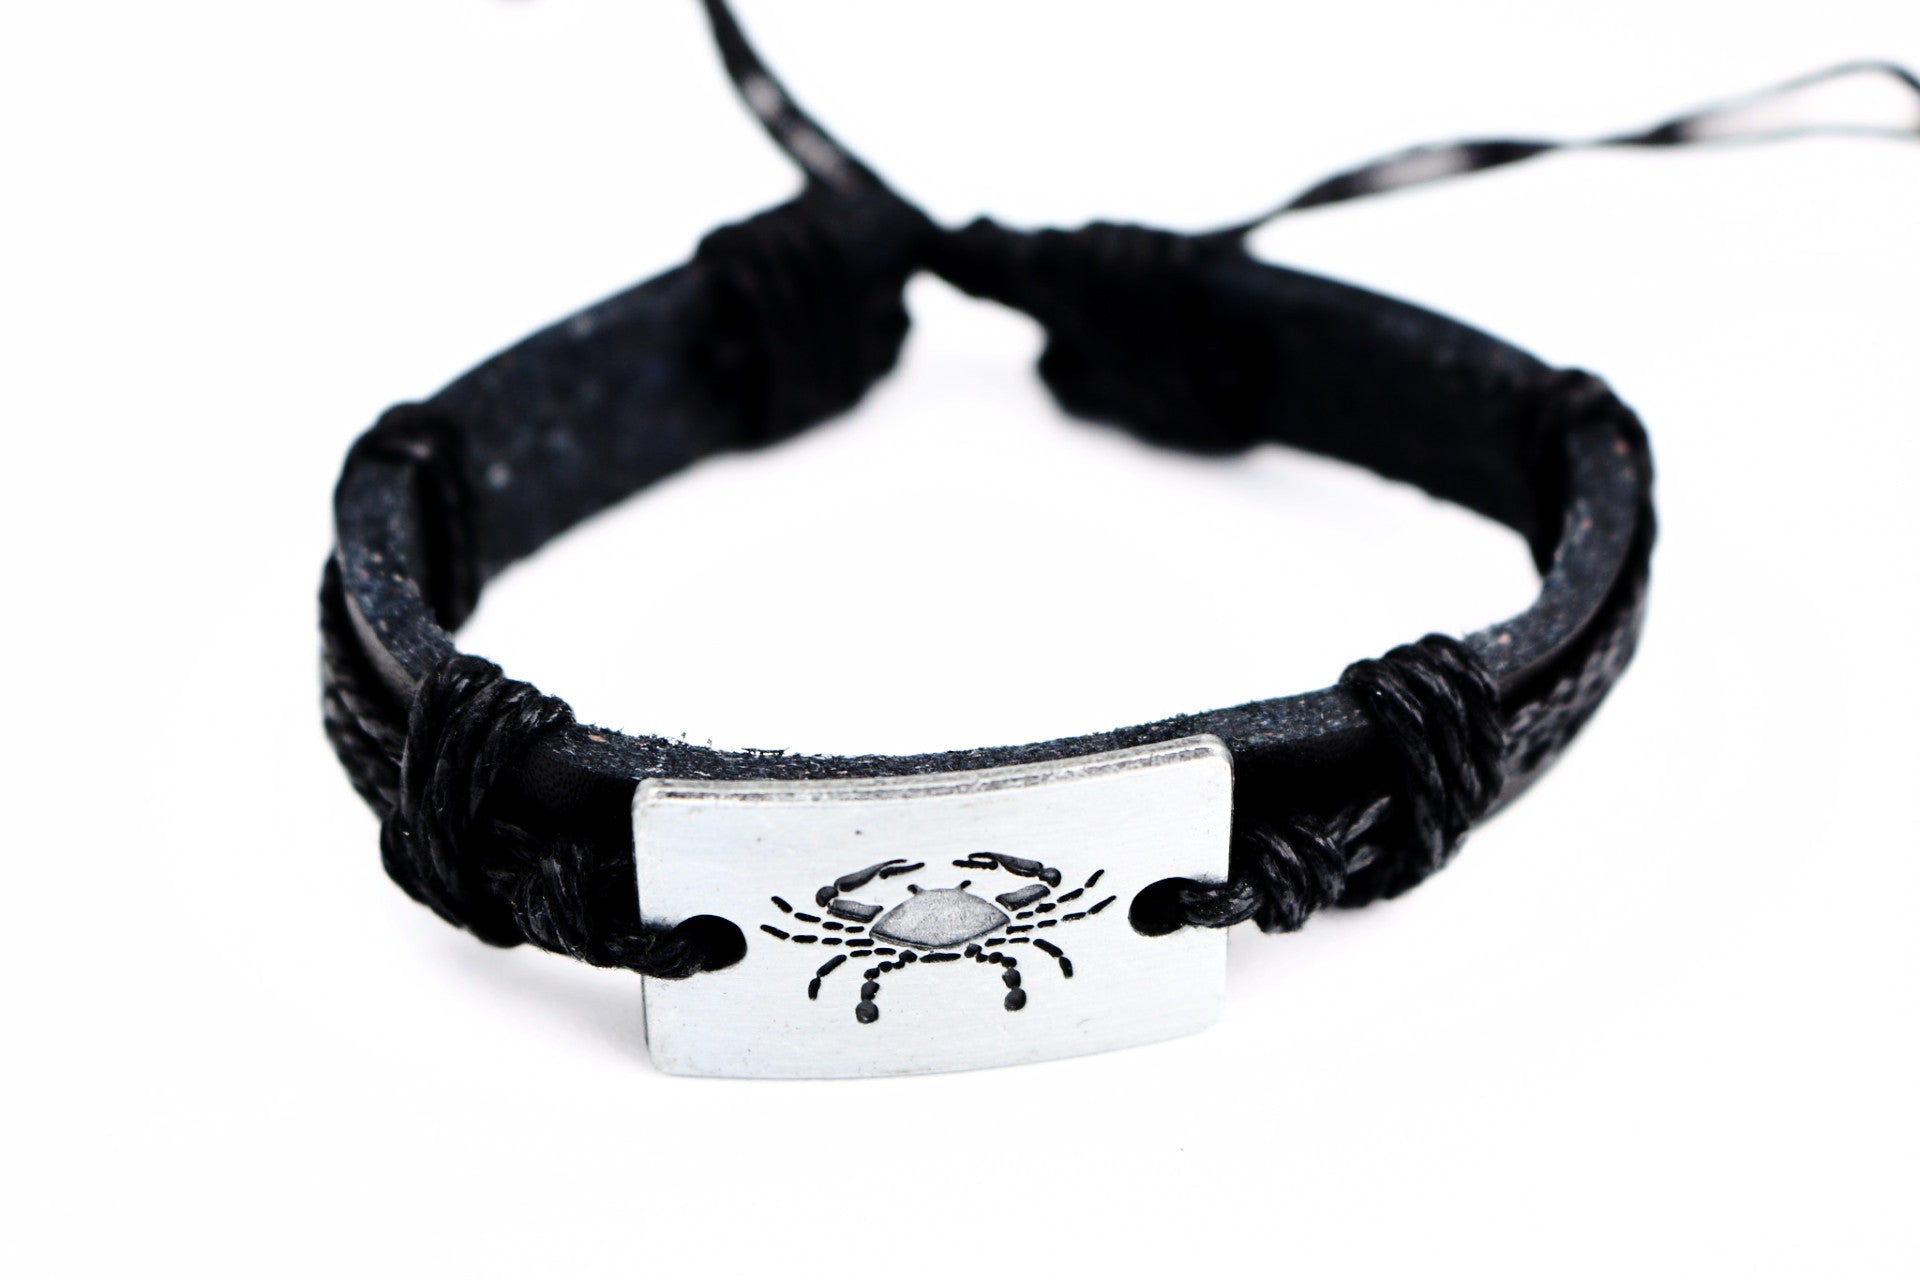 Cancer leather Cuff Bracelet - Lulugem.com